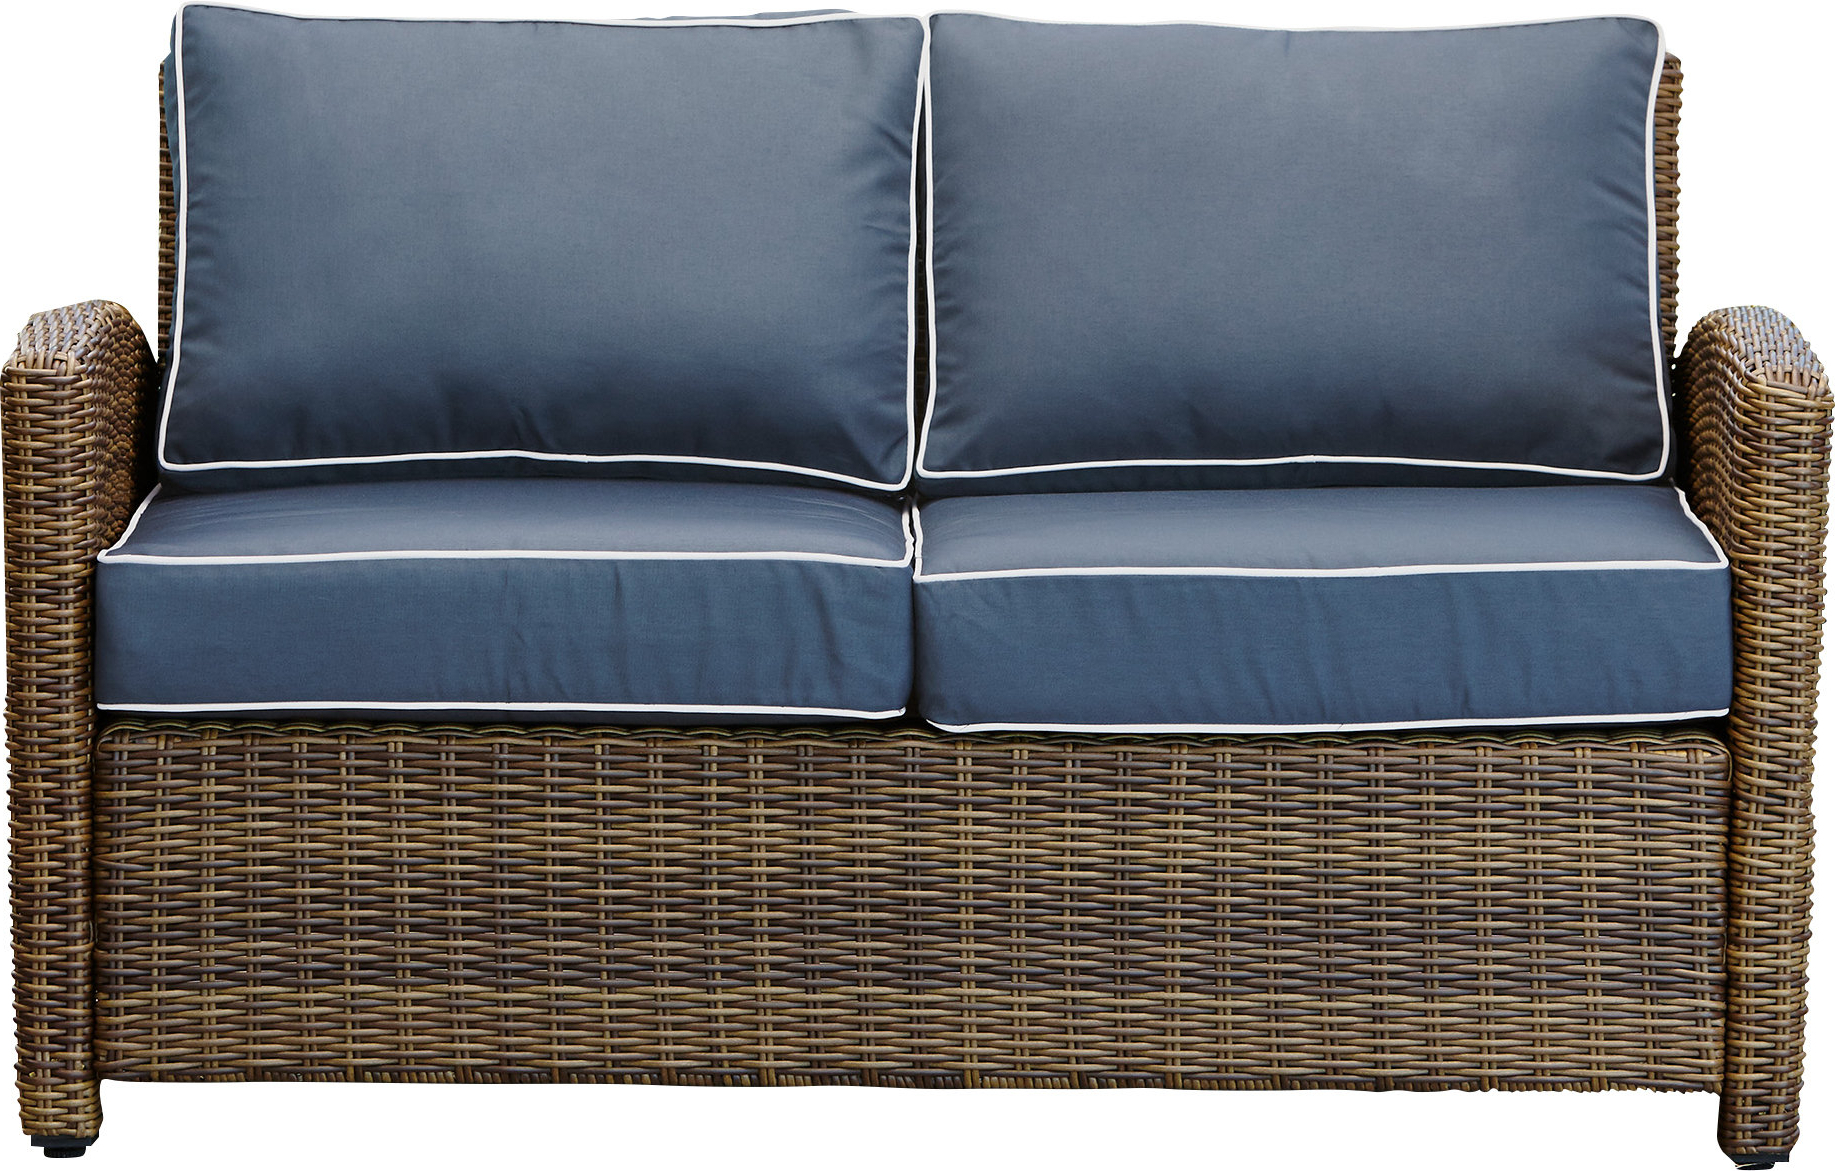 Allmodern For Provencher Patio Loveseats With Cushions (View 2 of 20)